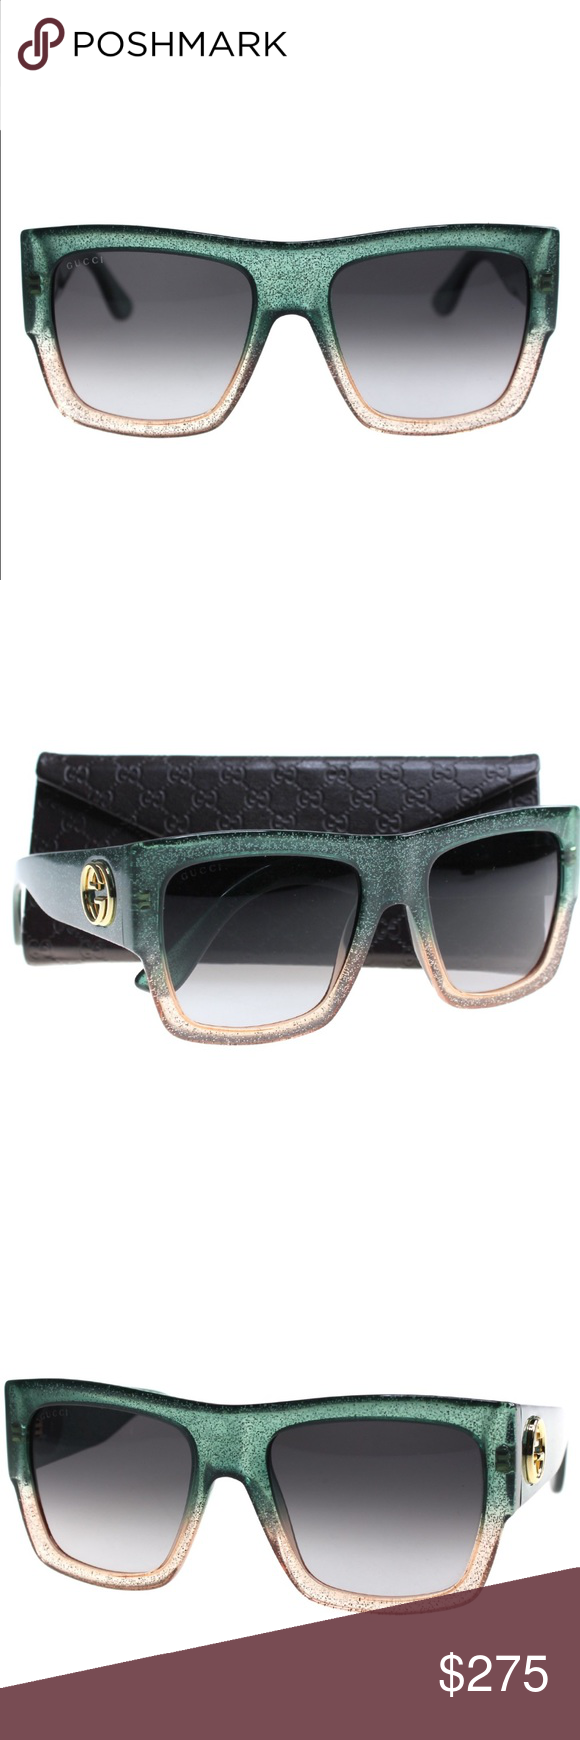 7b08c56d73 NEW Gucci Glitter Sunglasses From Current Gucci Collection - comes with  authenticity certificate from Gucci.